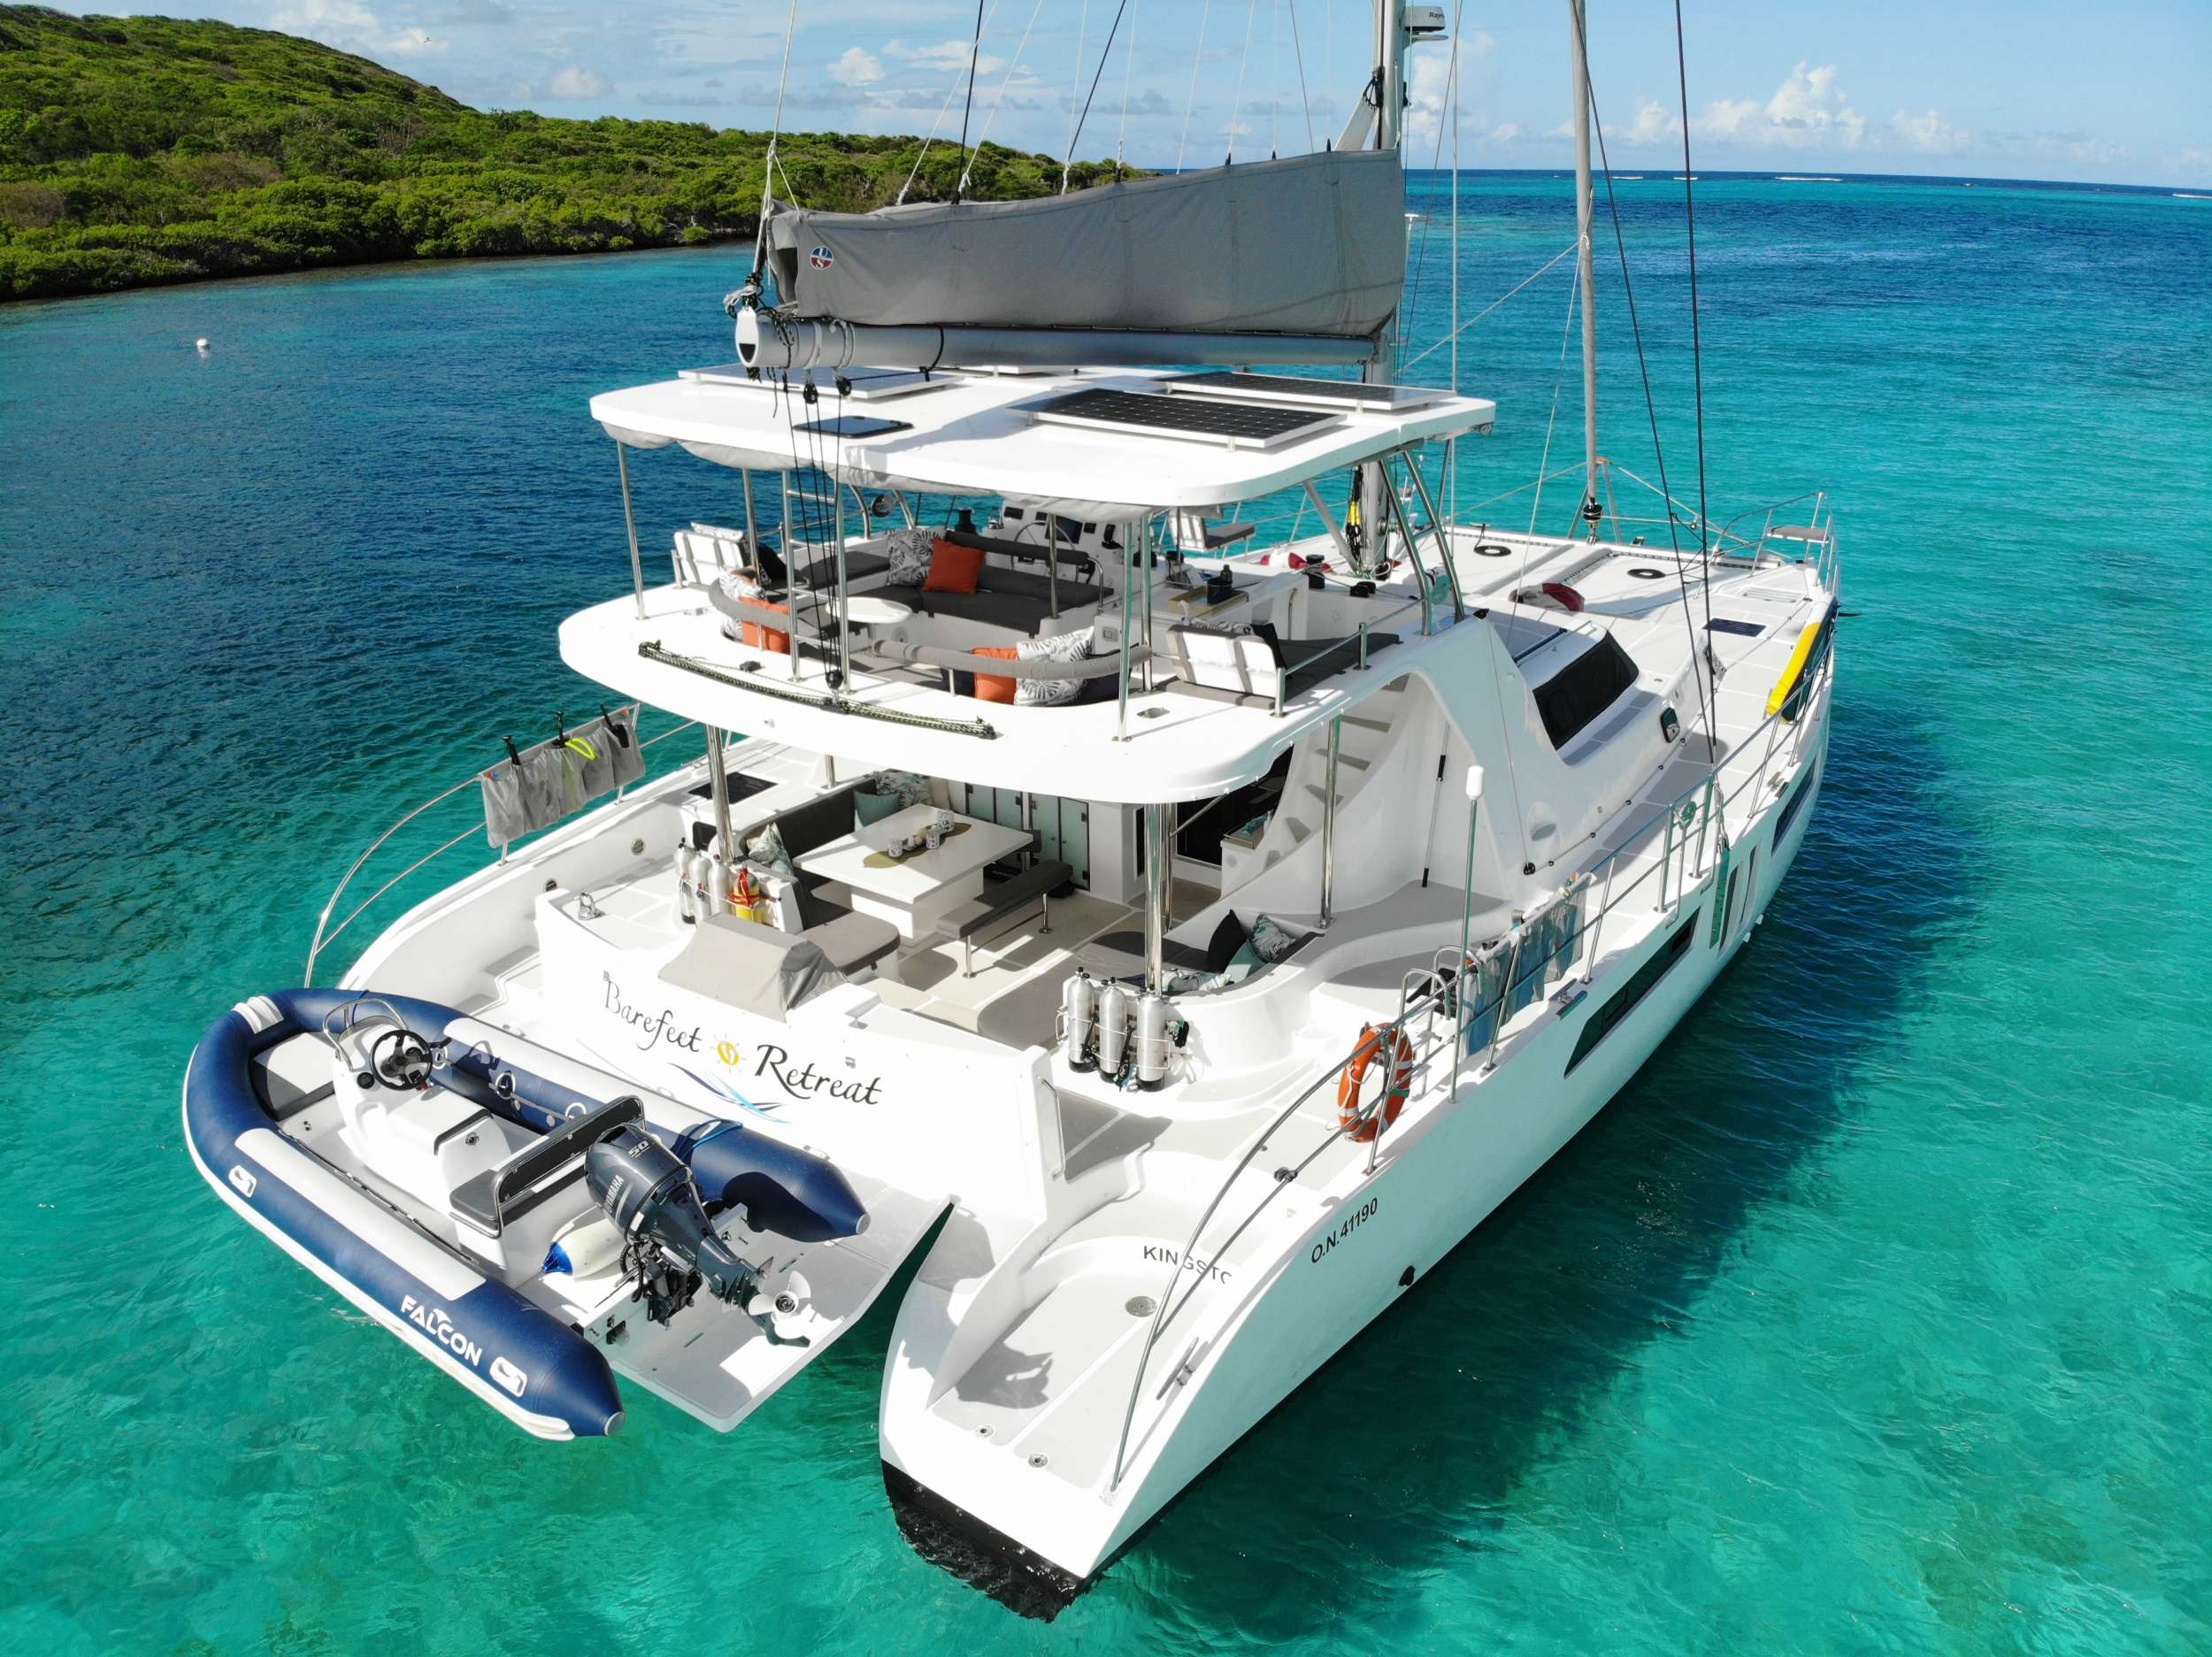 Main image of BAREFEET RETREAT yacht